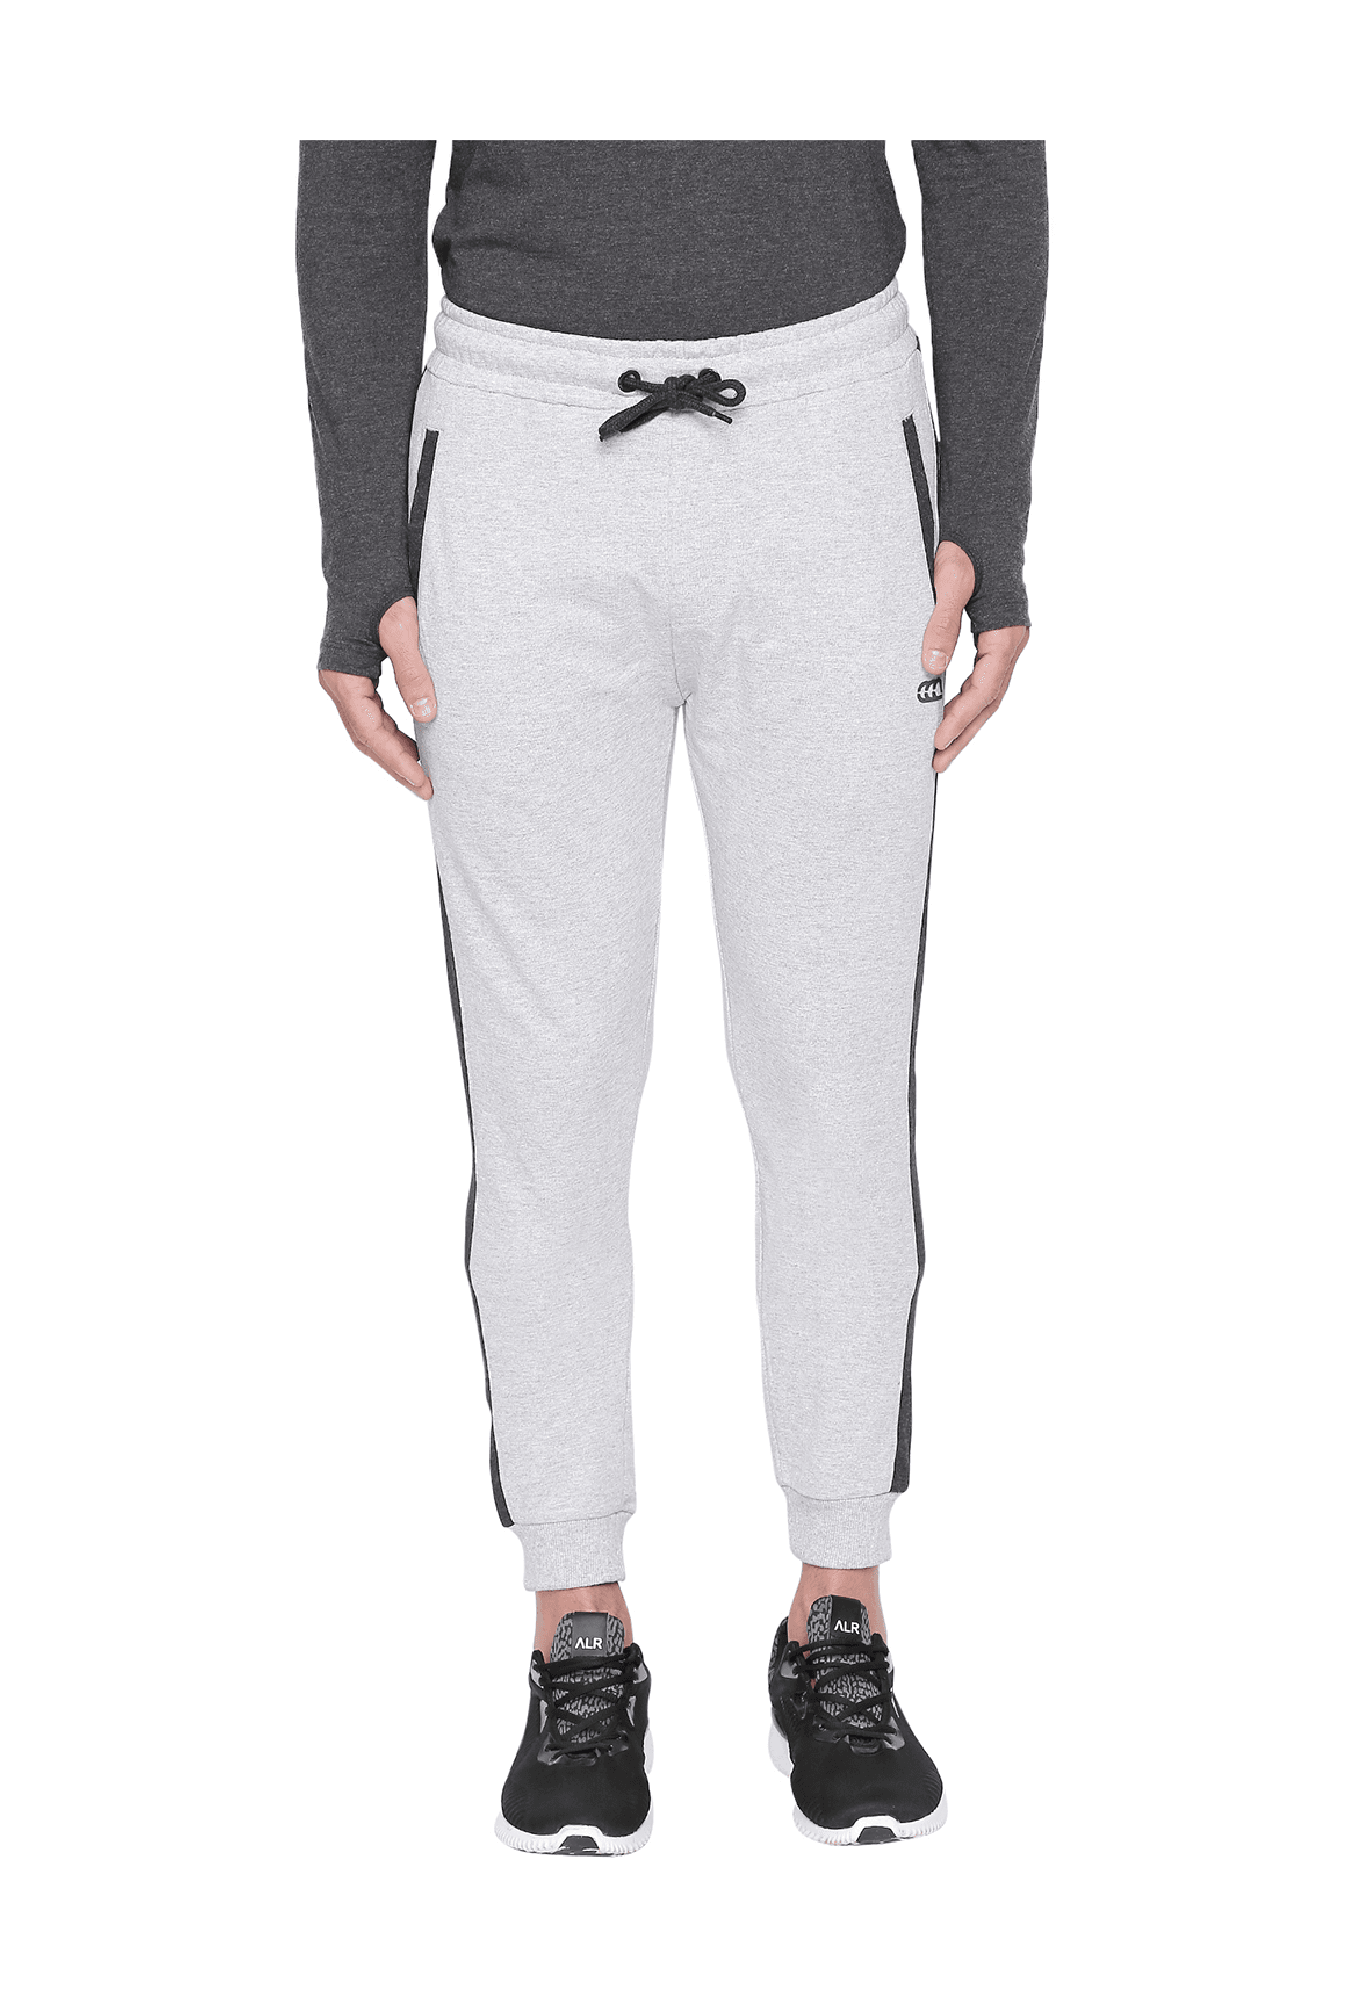 dece5a5534 Buy Ajile by Pantaloons Grey Melange Tapered Fit Cotton Trackpants ...